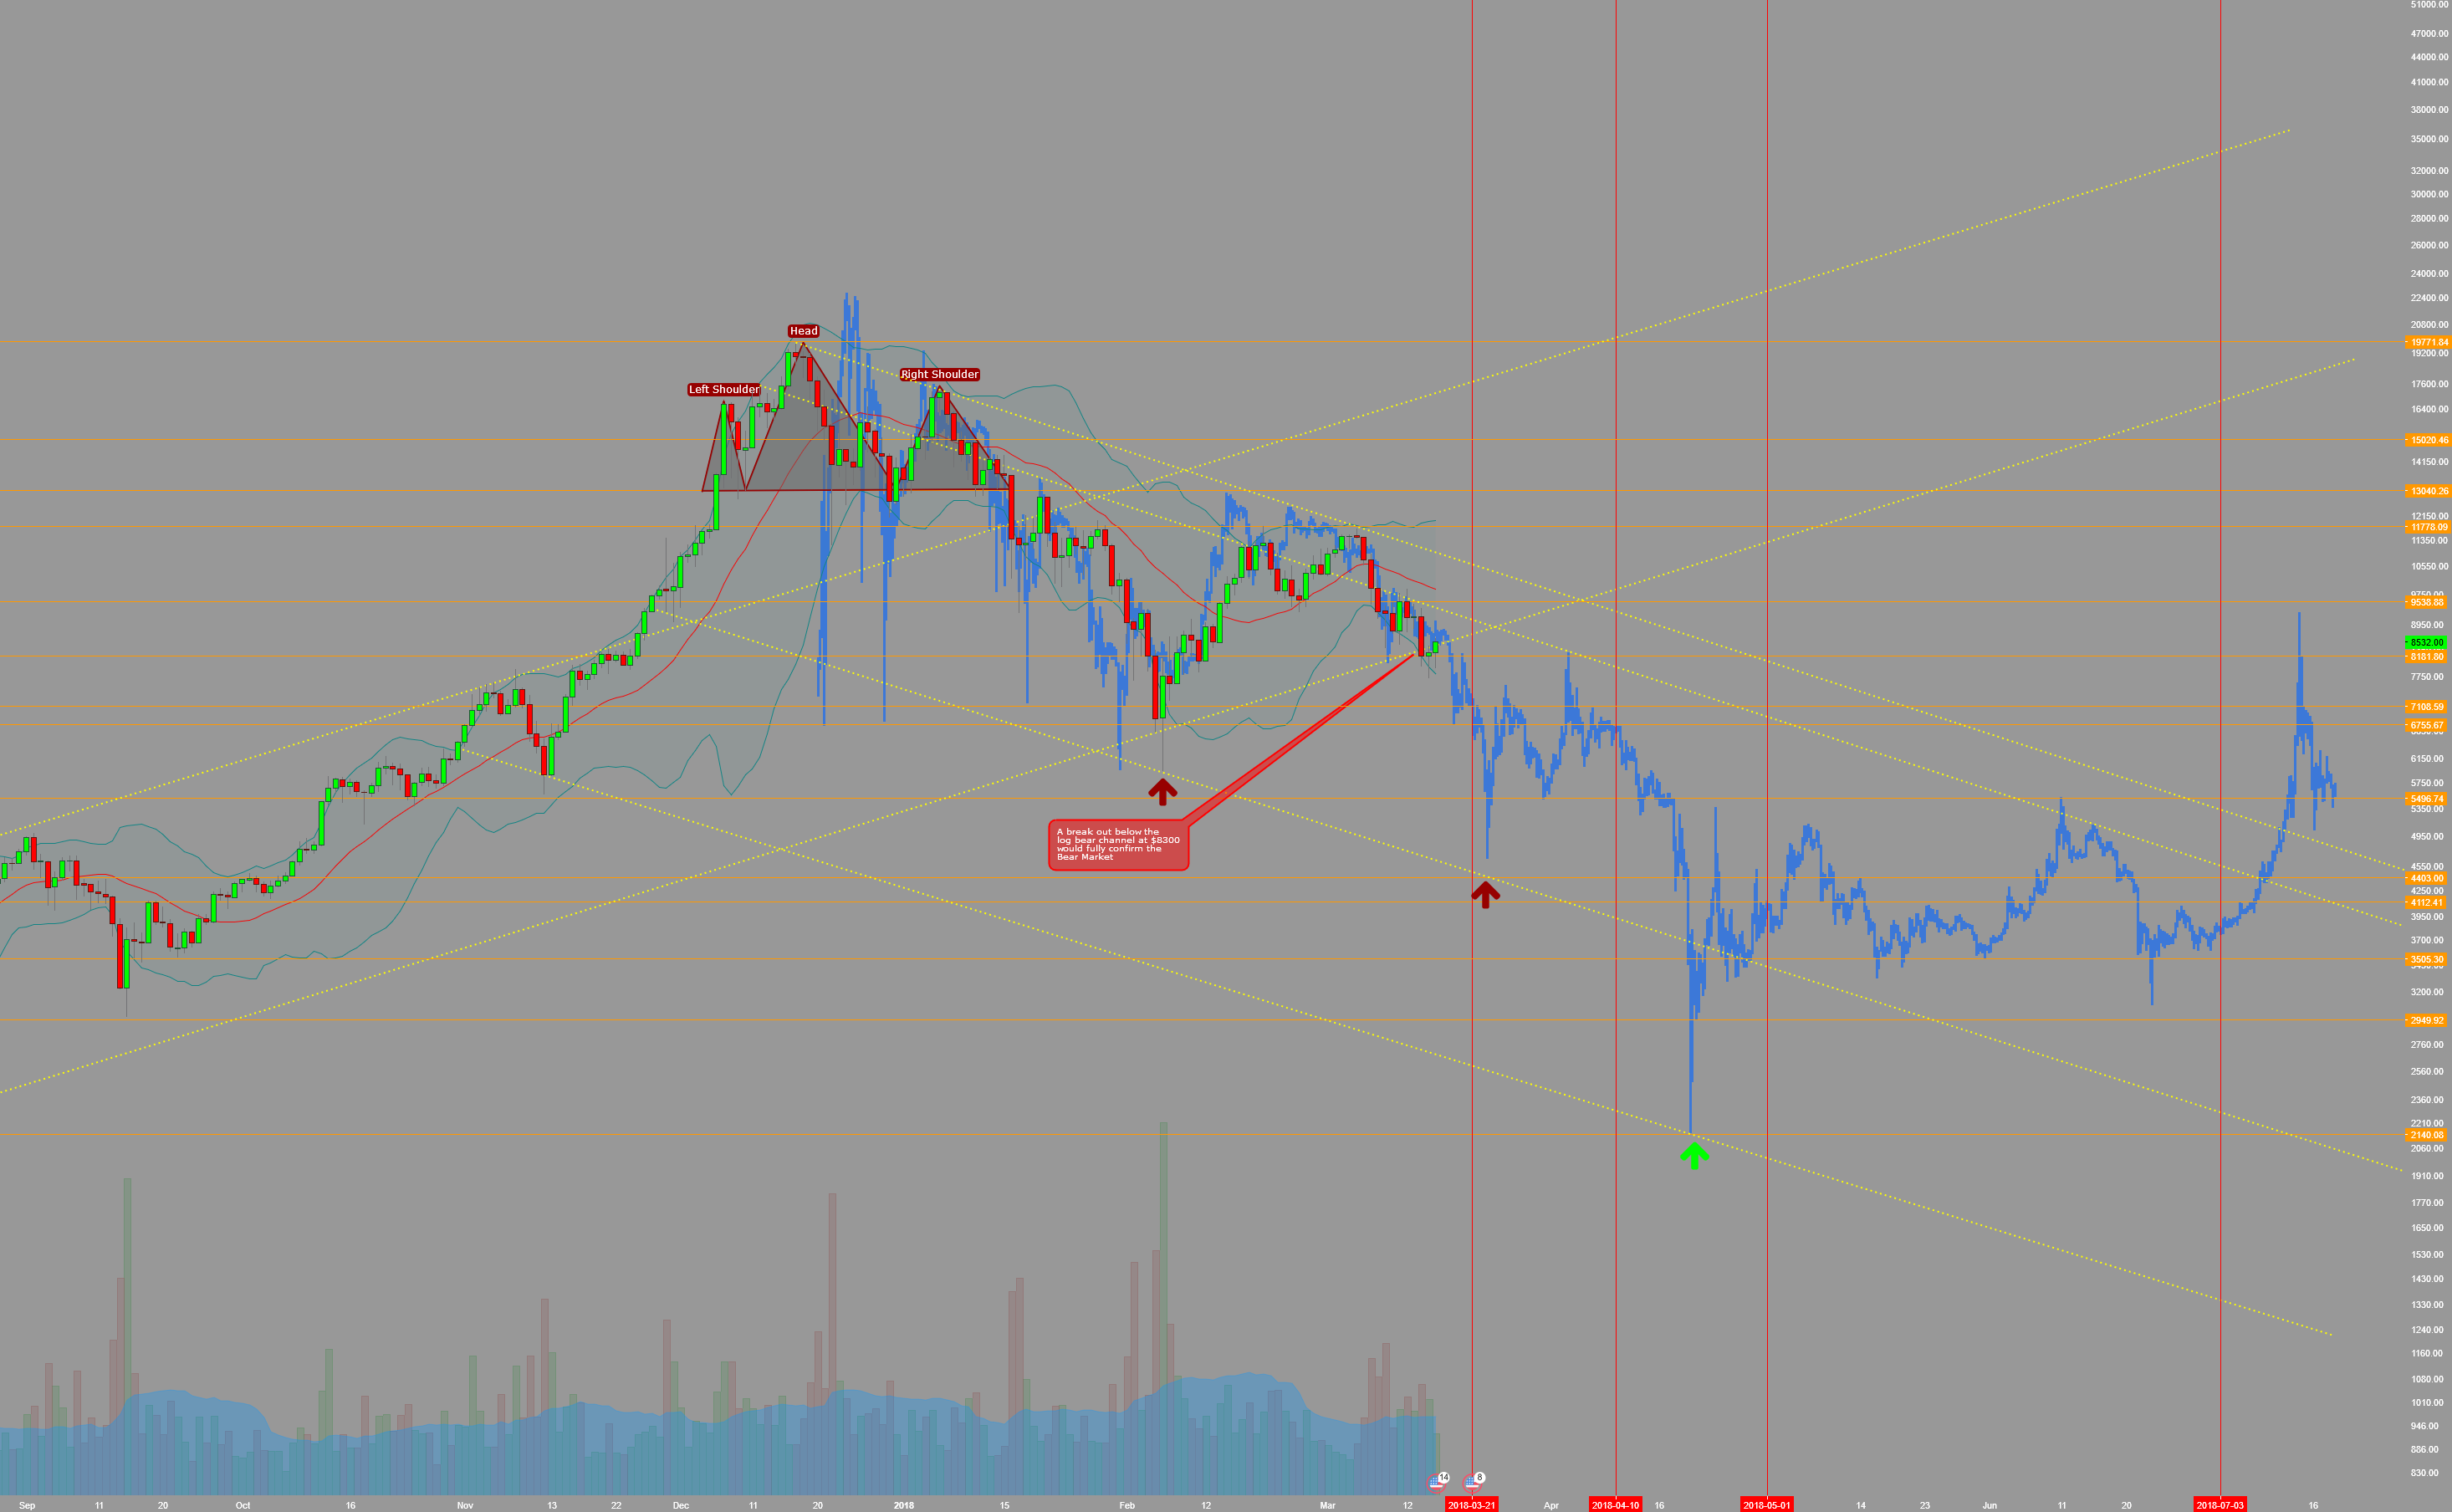 Fractal Analysis – The Bitcoin Bear Market to end on July 2018